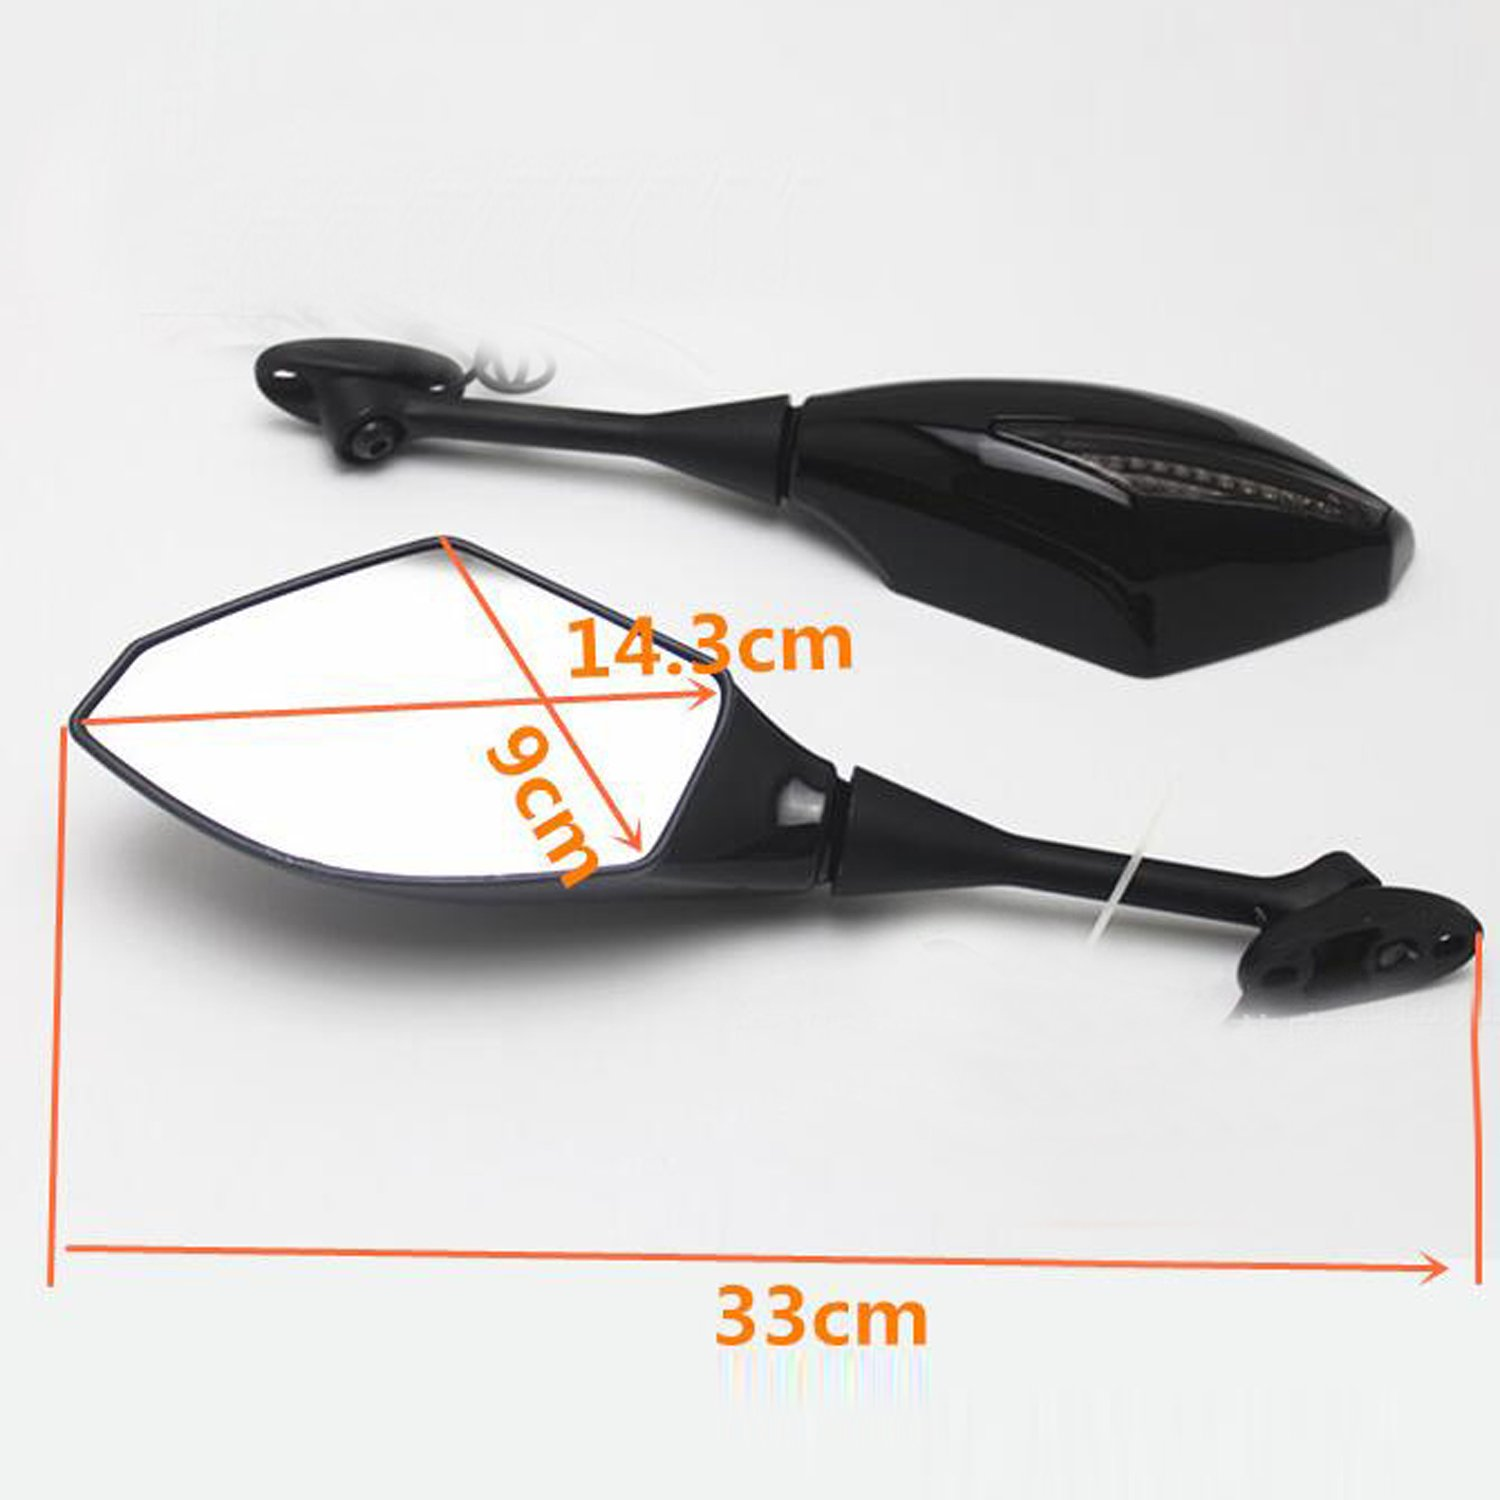 OKSTNO Motorcycle Rearview Side Mirror Turn Signal Mirrors For 2003-2012 Honda Cbr 600Rr 2004-2007 Cbr1000Rr